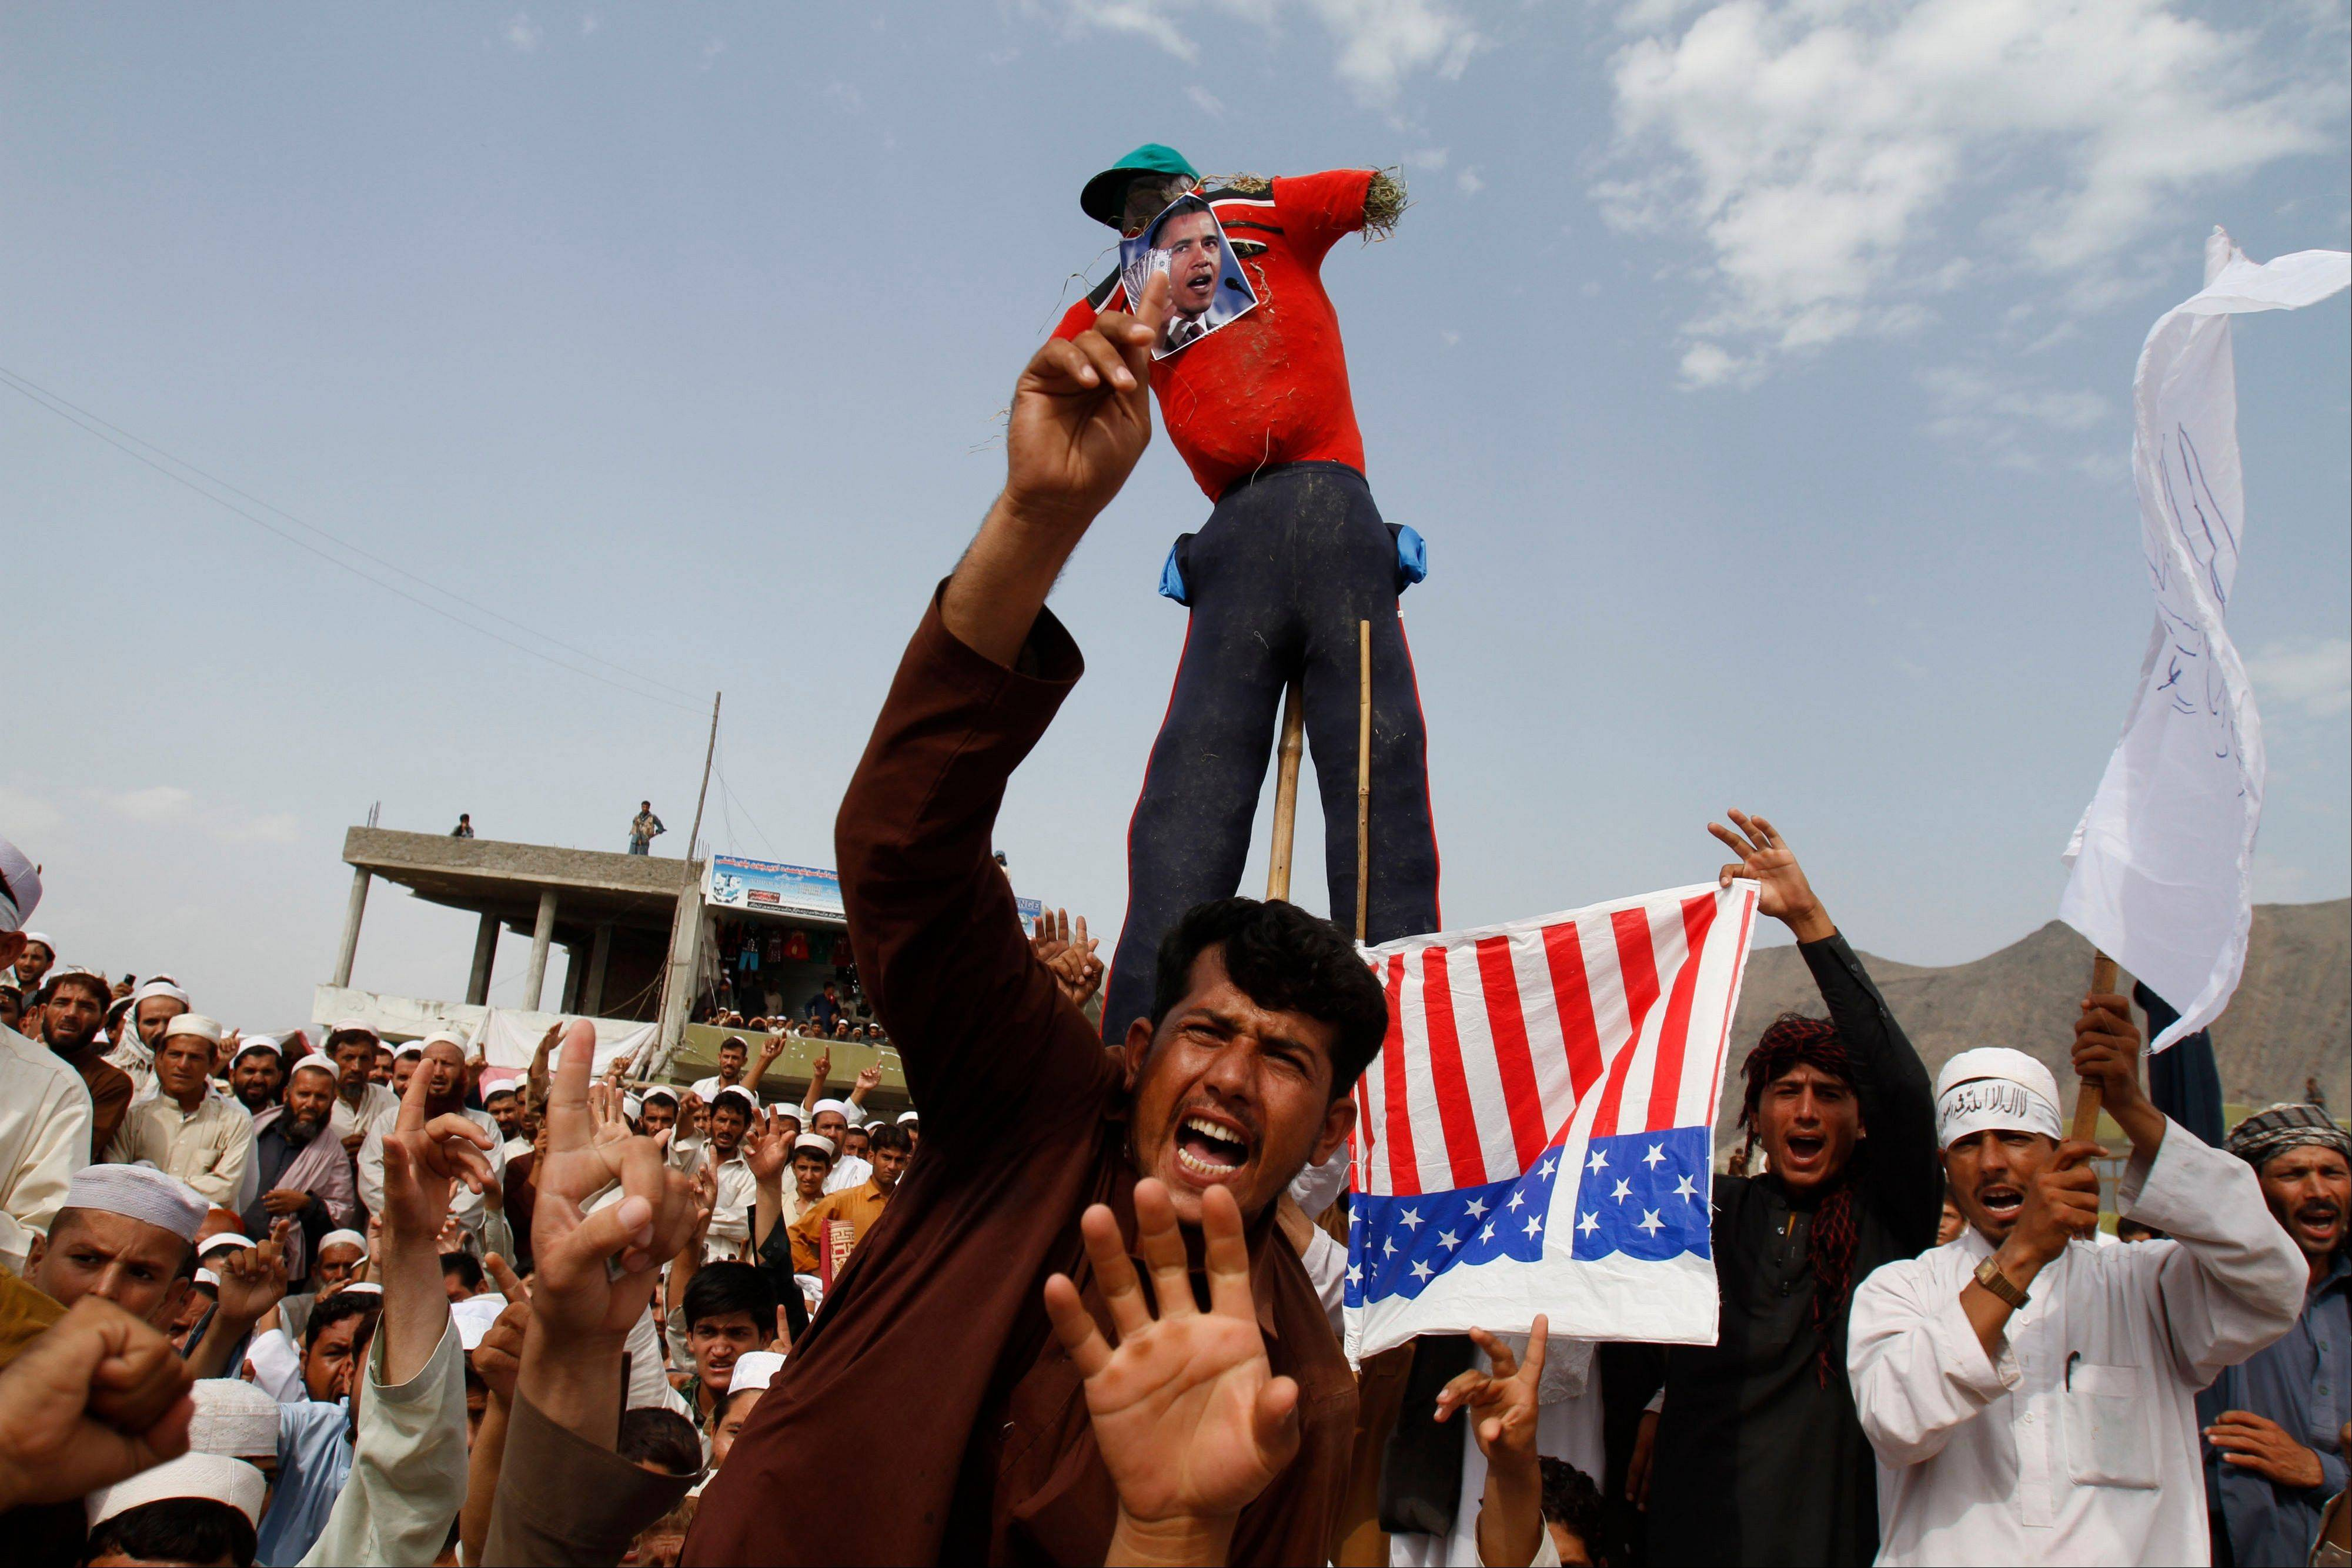 Afghans shout anti-American slogans in Ghanikhel district of Nangarhar province, east of Kabul, Afghanistan, Friday, Sept. 14, 2012 during a protest against an anti-Islam film which depicts the Prophet Muhammad as a fraud, a womanizer and a madman.